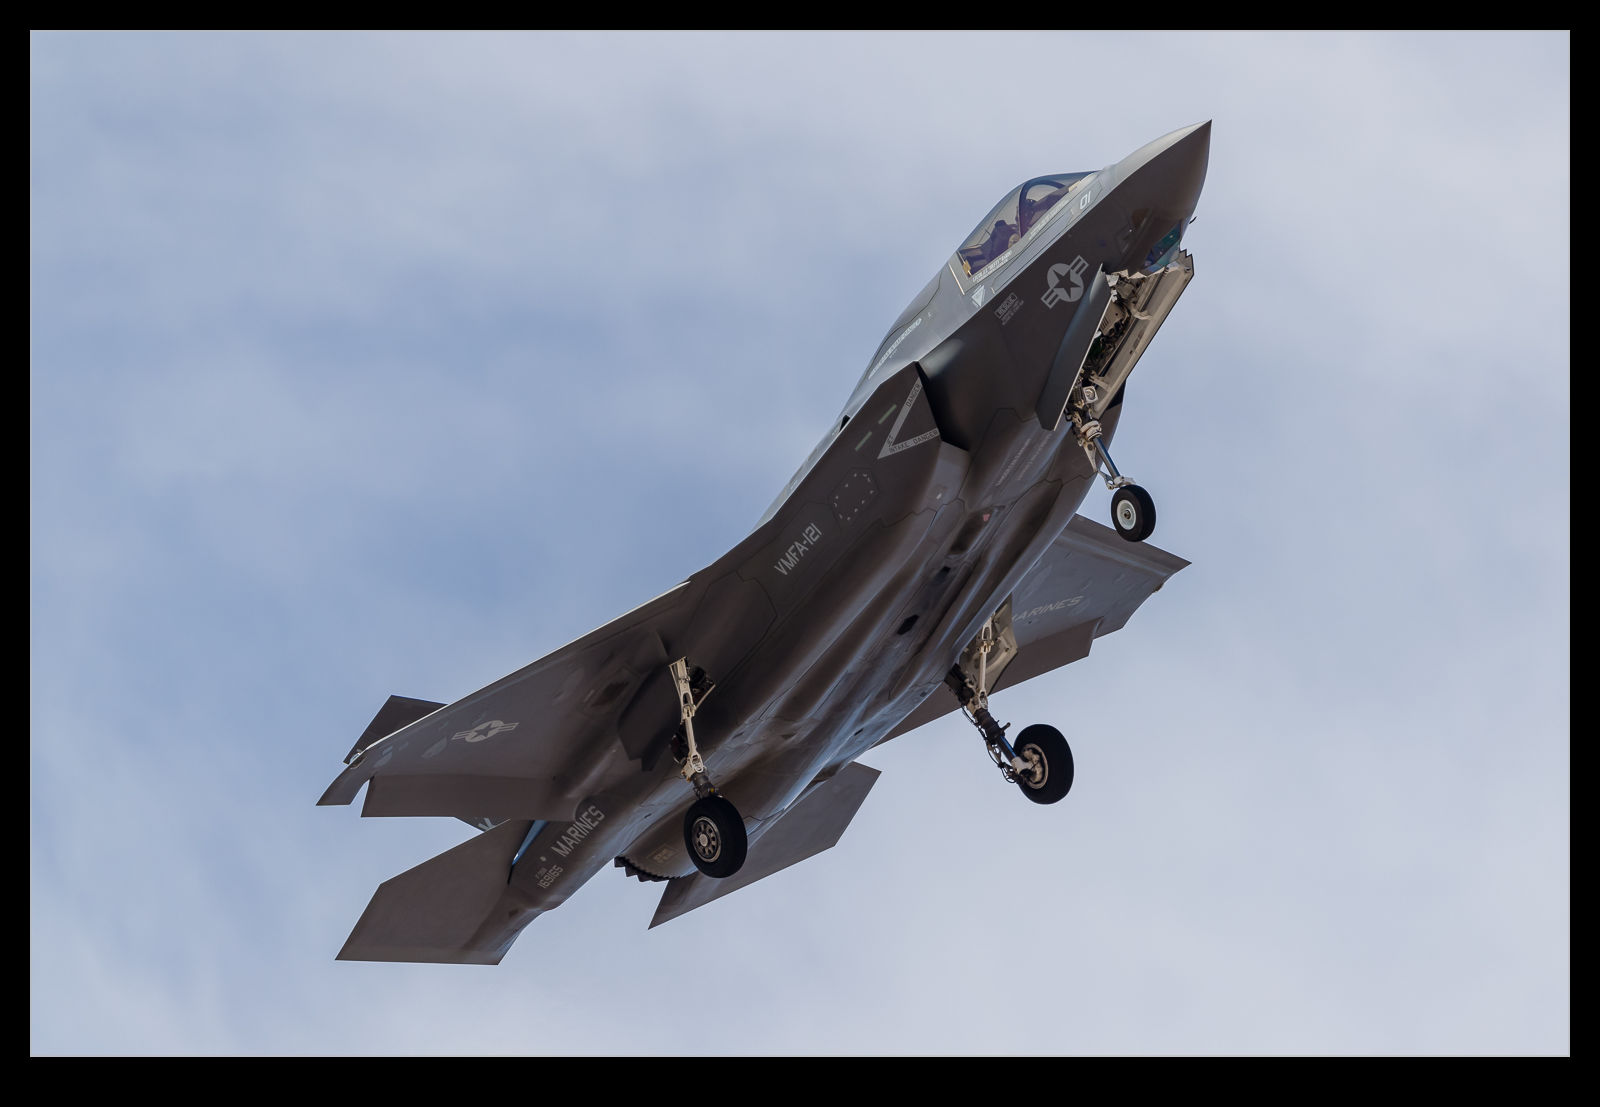 A USMC F-35B turns on to final approach at Nellis AFB.